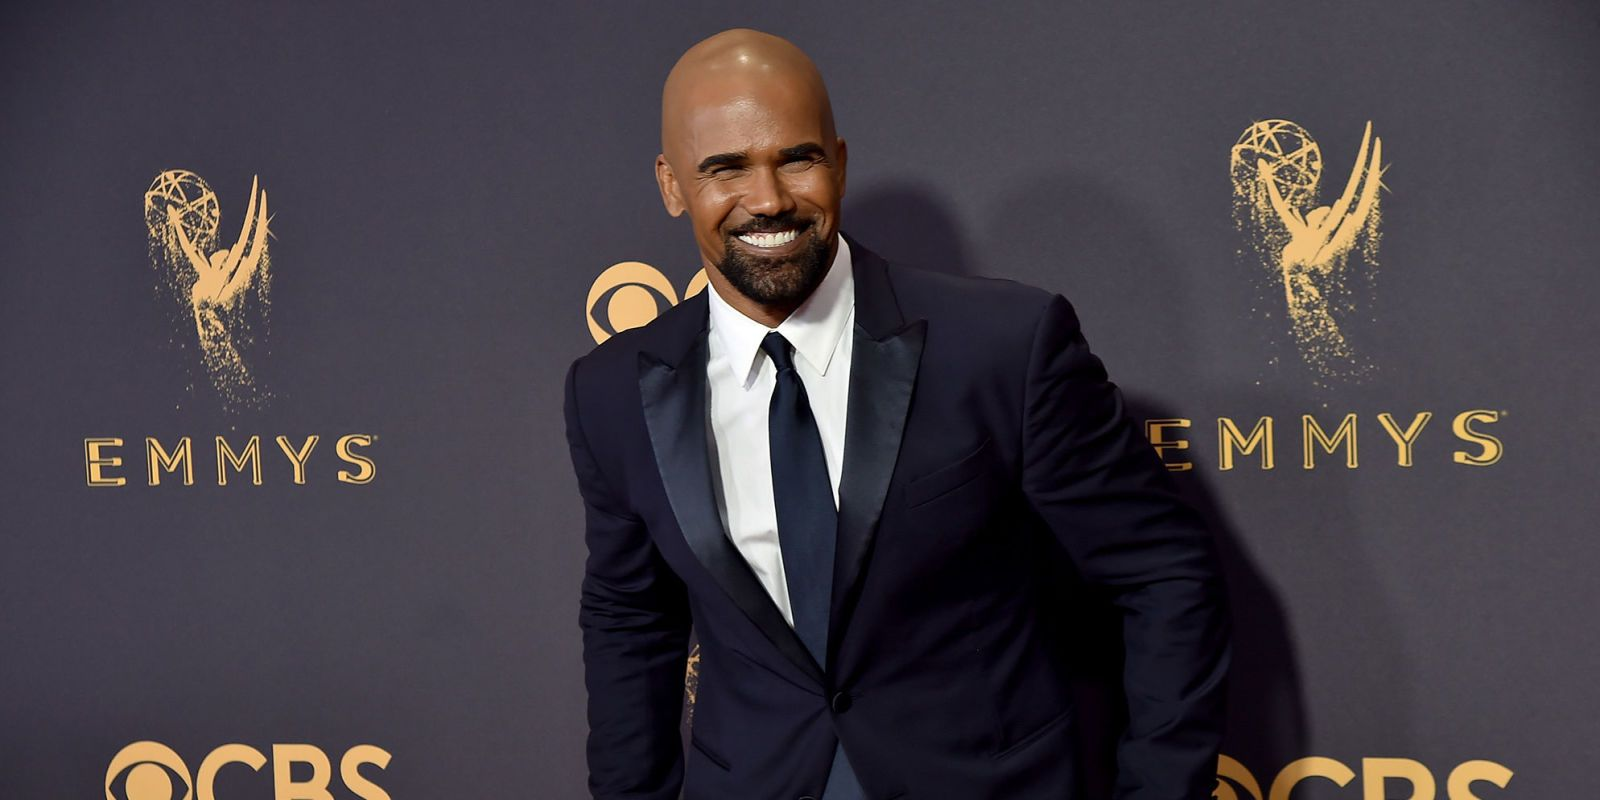 Who is shemar moore dating in real life